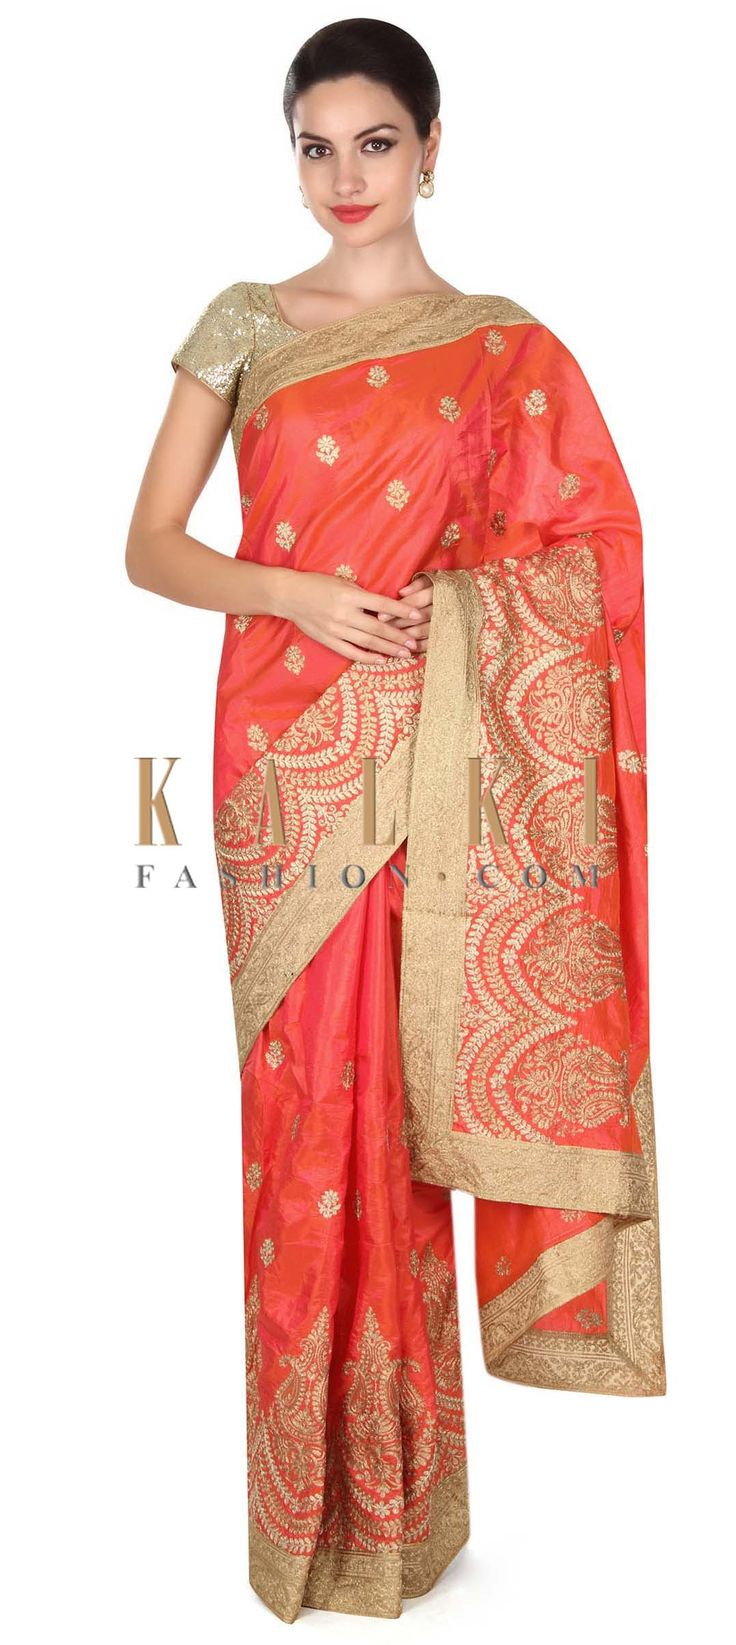 Buy this Coral saree adorn in zari in paisley motif embroidery only on Kalki